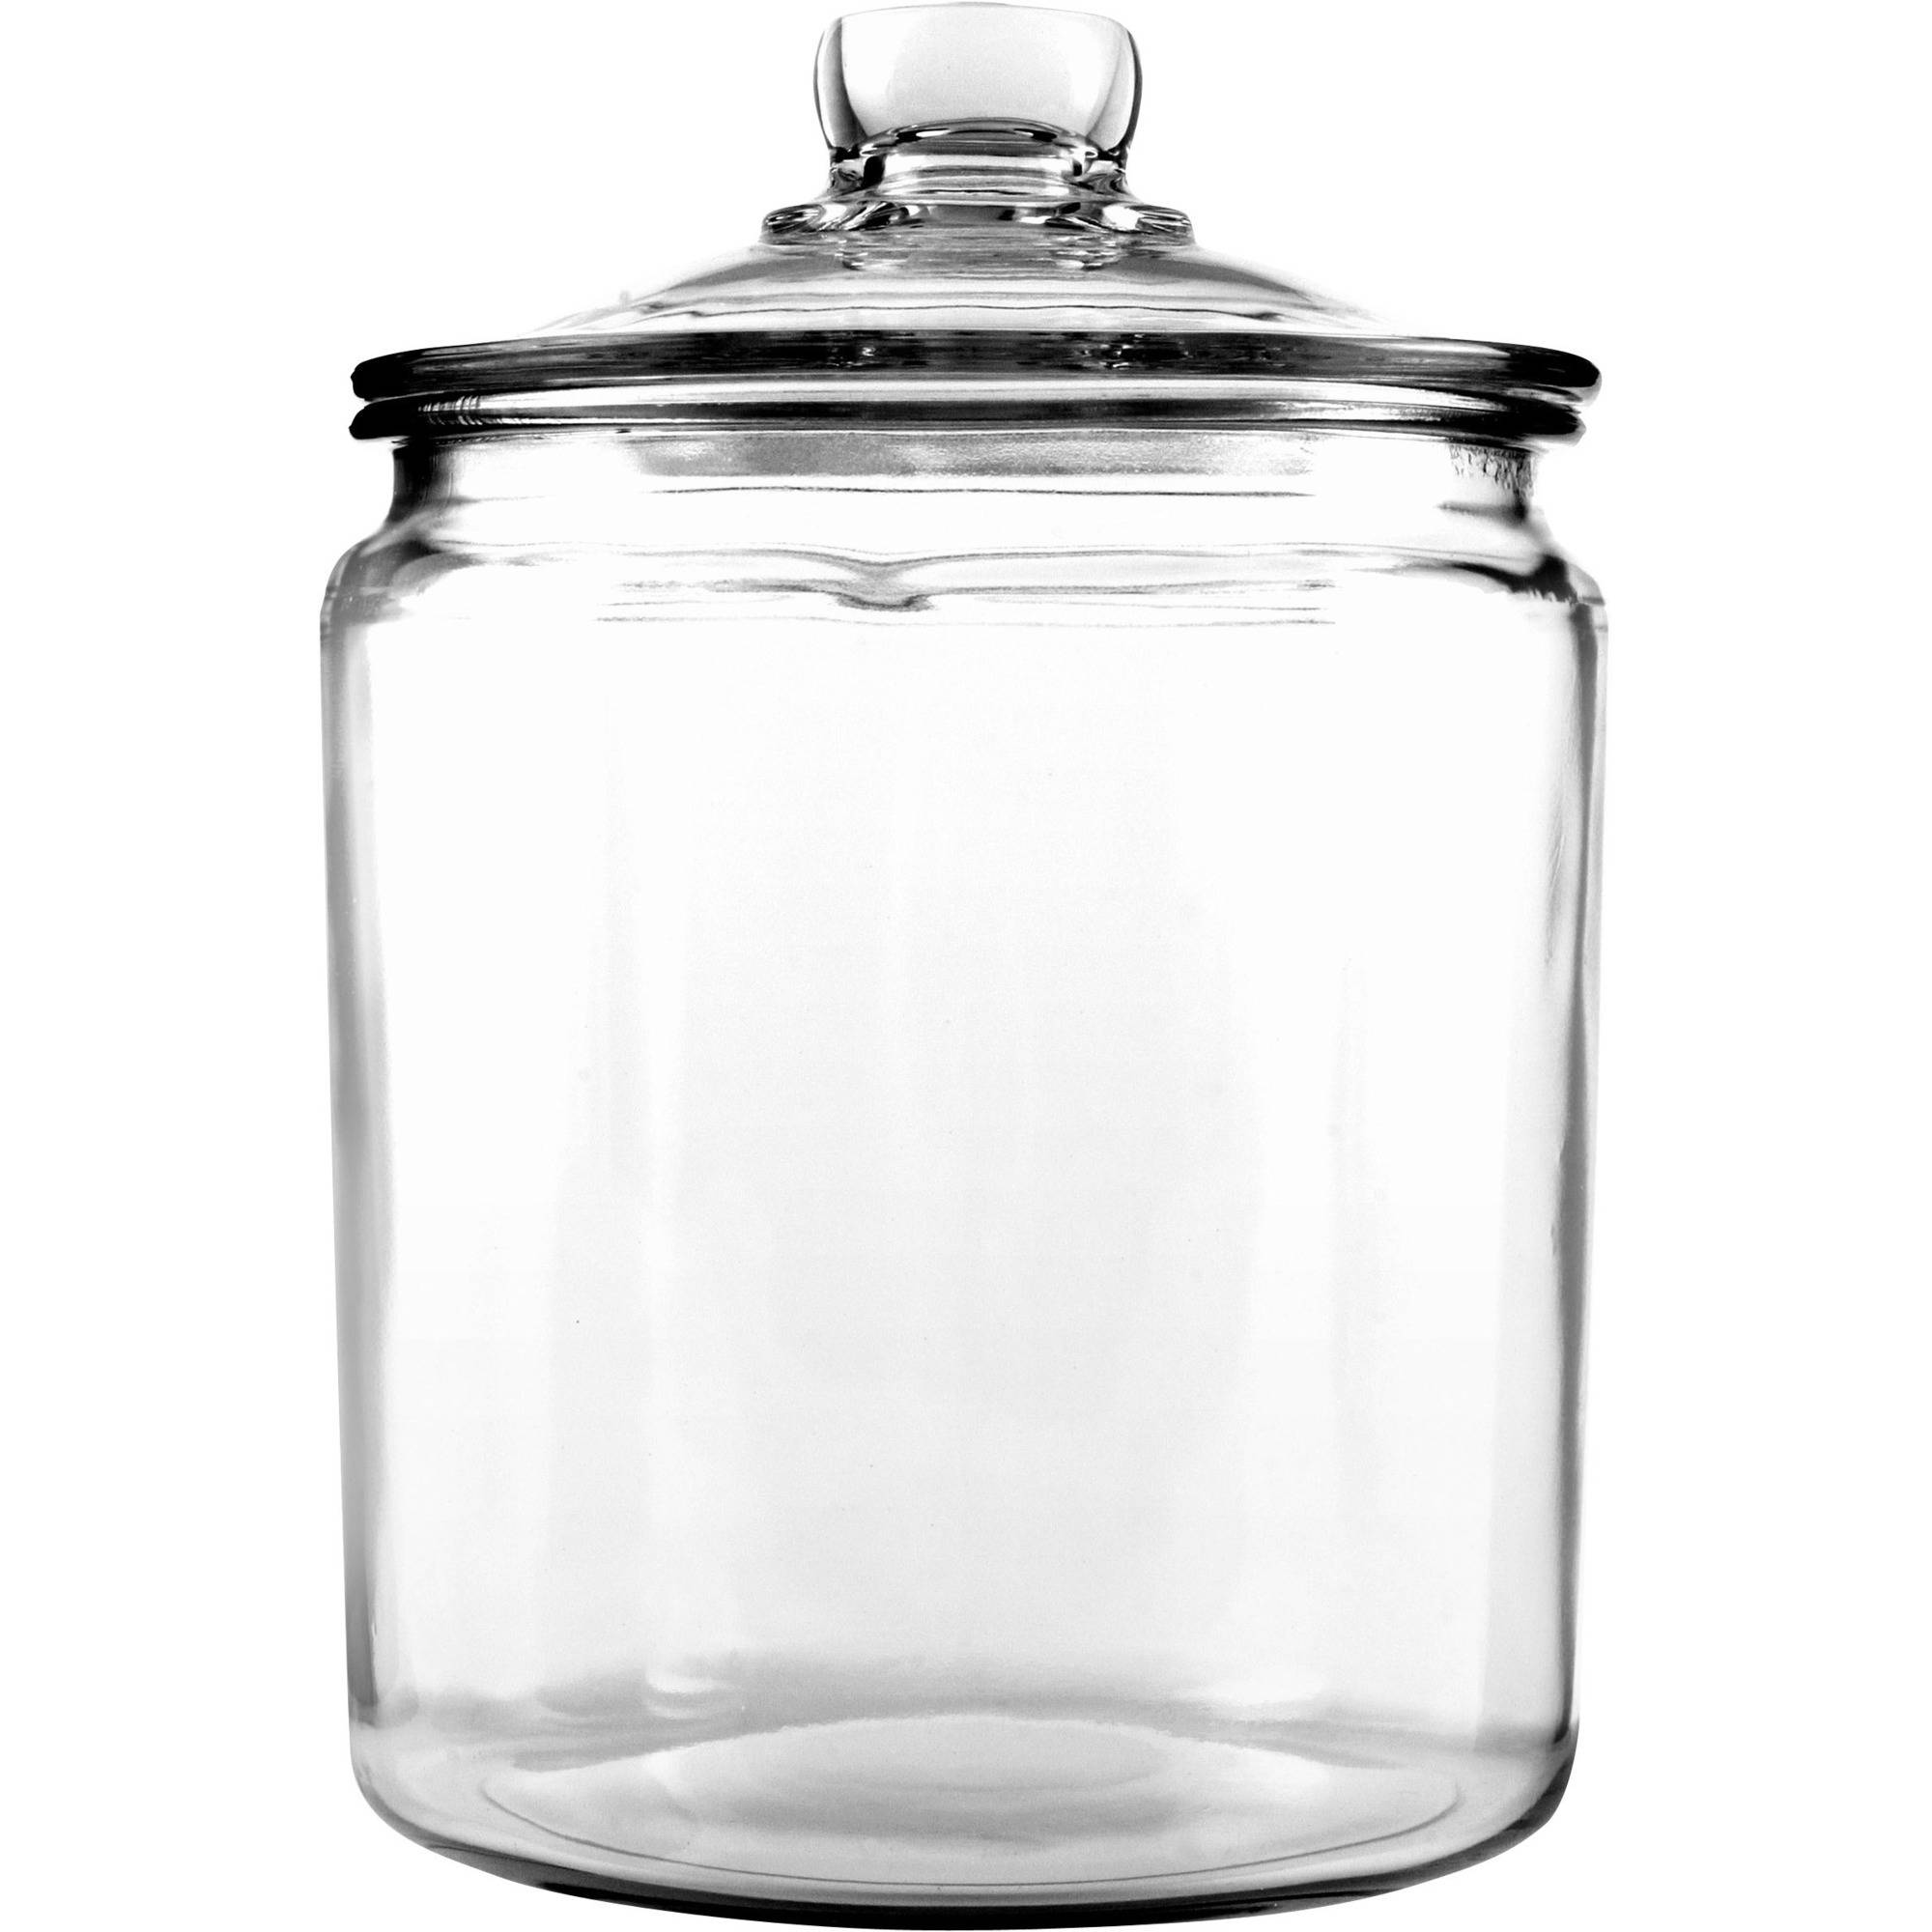 Huge Glass Cookie Jar 1 2 Gallon Cookies Glass Jar Food Coffee Sugar Storage